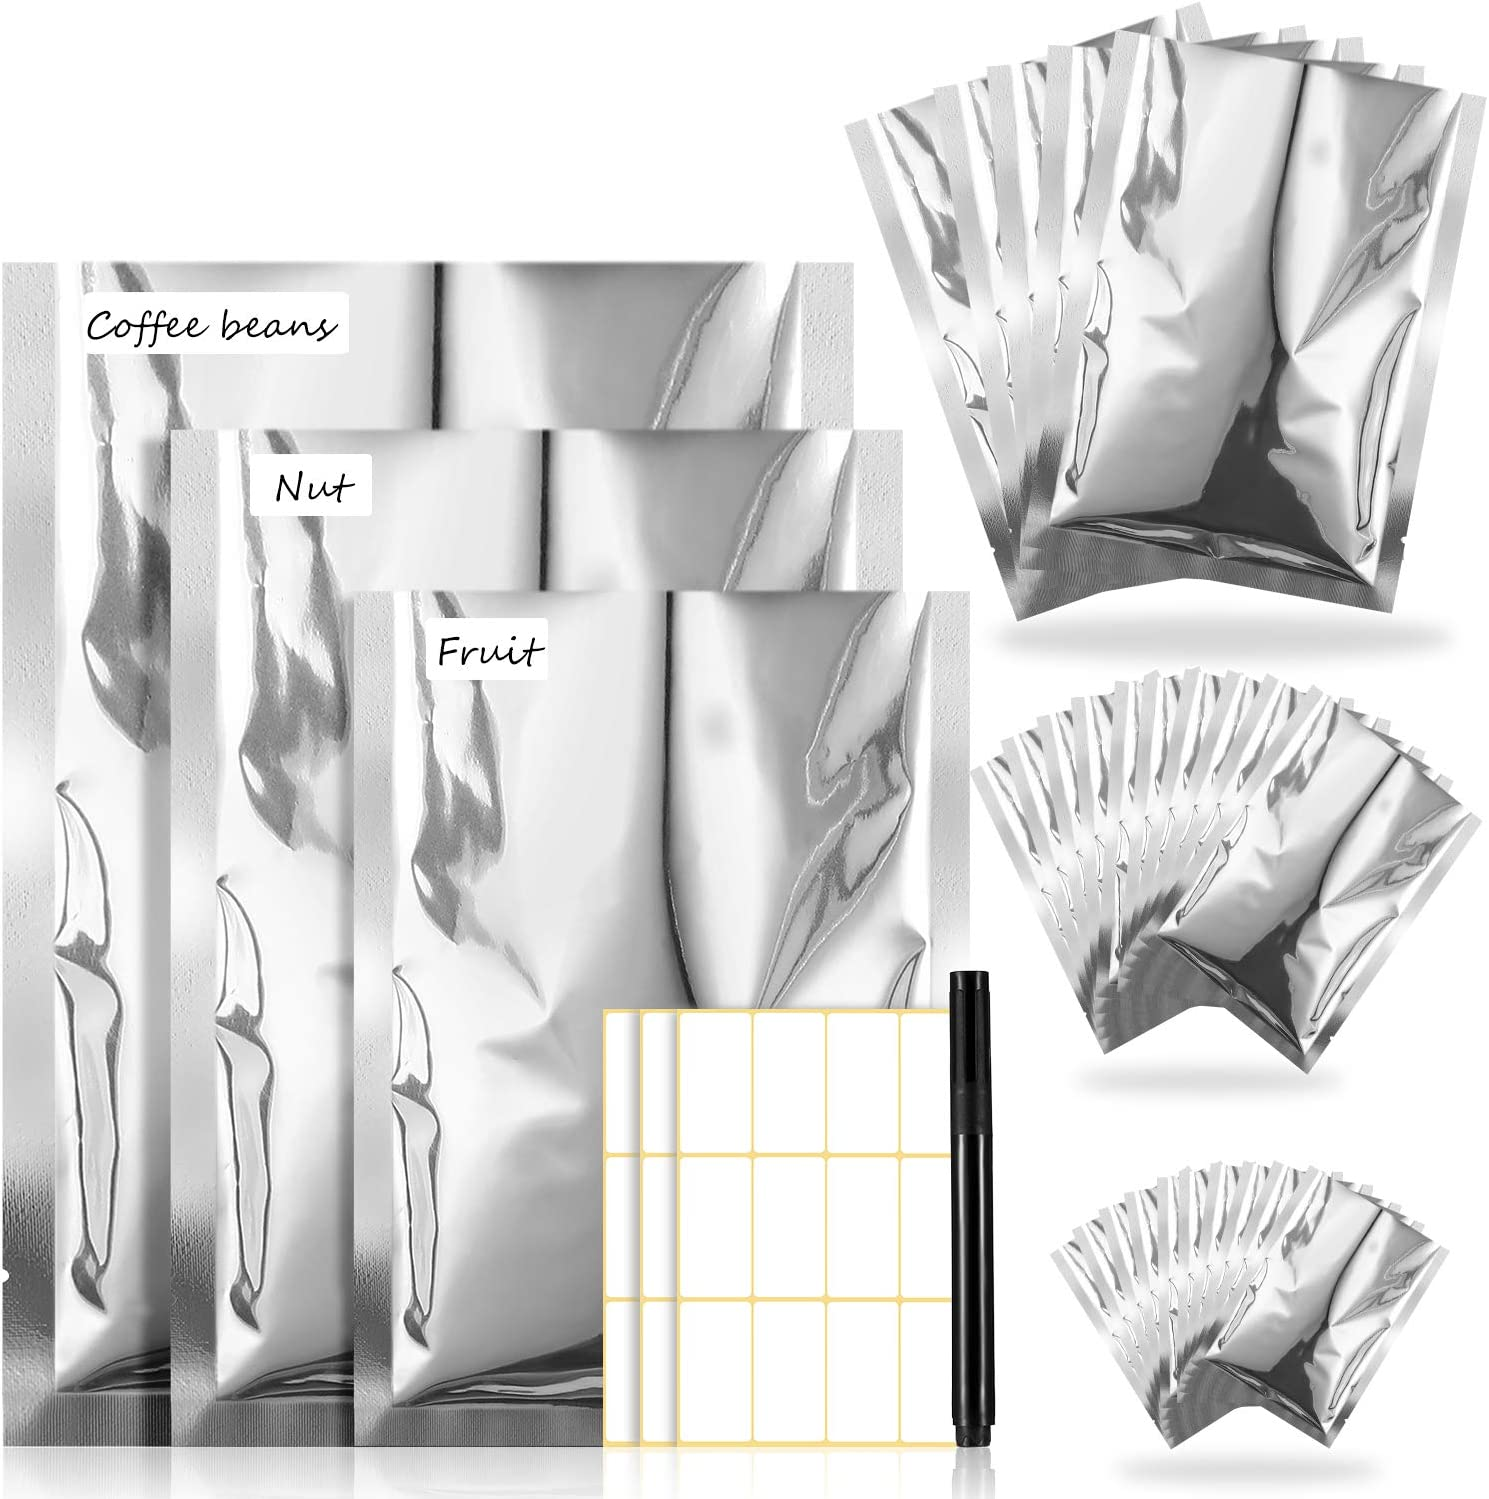 25 Pieces 3 Sizes Mylar Aluminum Foil Bag, Metallic Mylar Foil Flat Heat Sealable Bag Storage Bag Pouch, 3 Pieces Label Tag, Markers for Food Coffee Tea Beans, 6 x 9 Inch, 8 x 12 Inch, 10 x 14 Inch